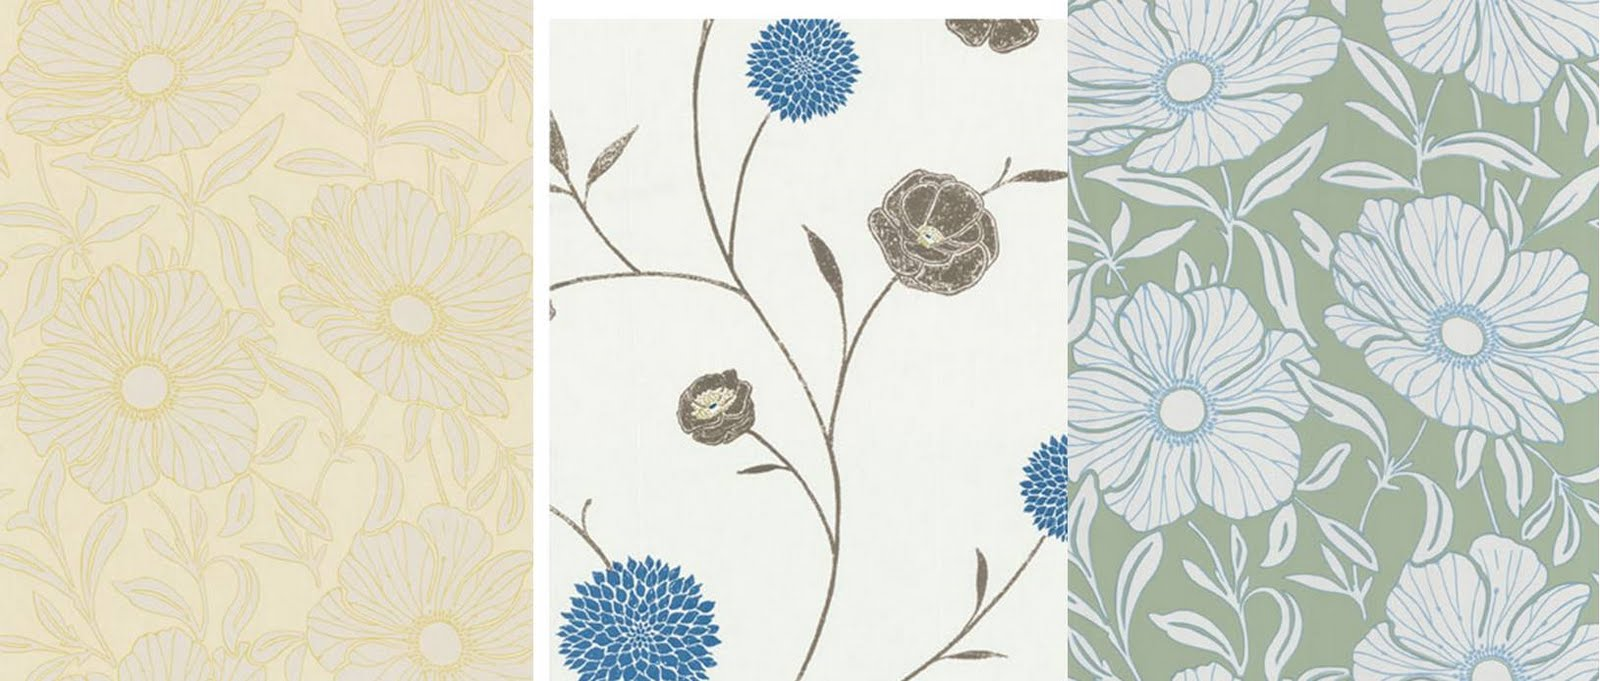 wallpaper borders sherwin williams   wwwhigh definition wallpapercom 1600x681